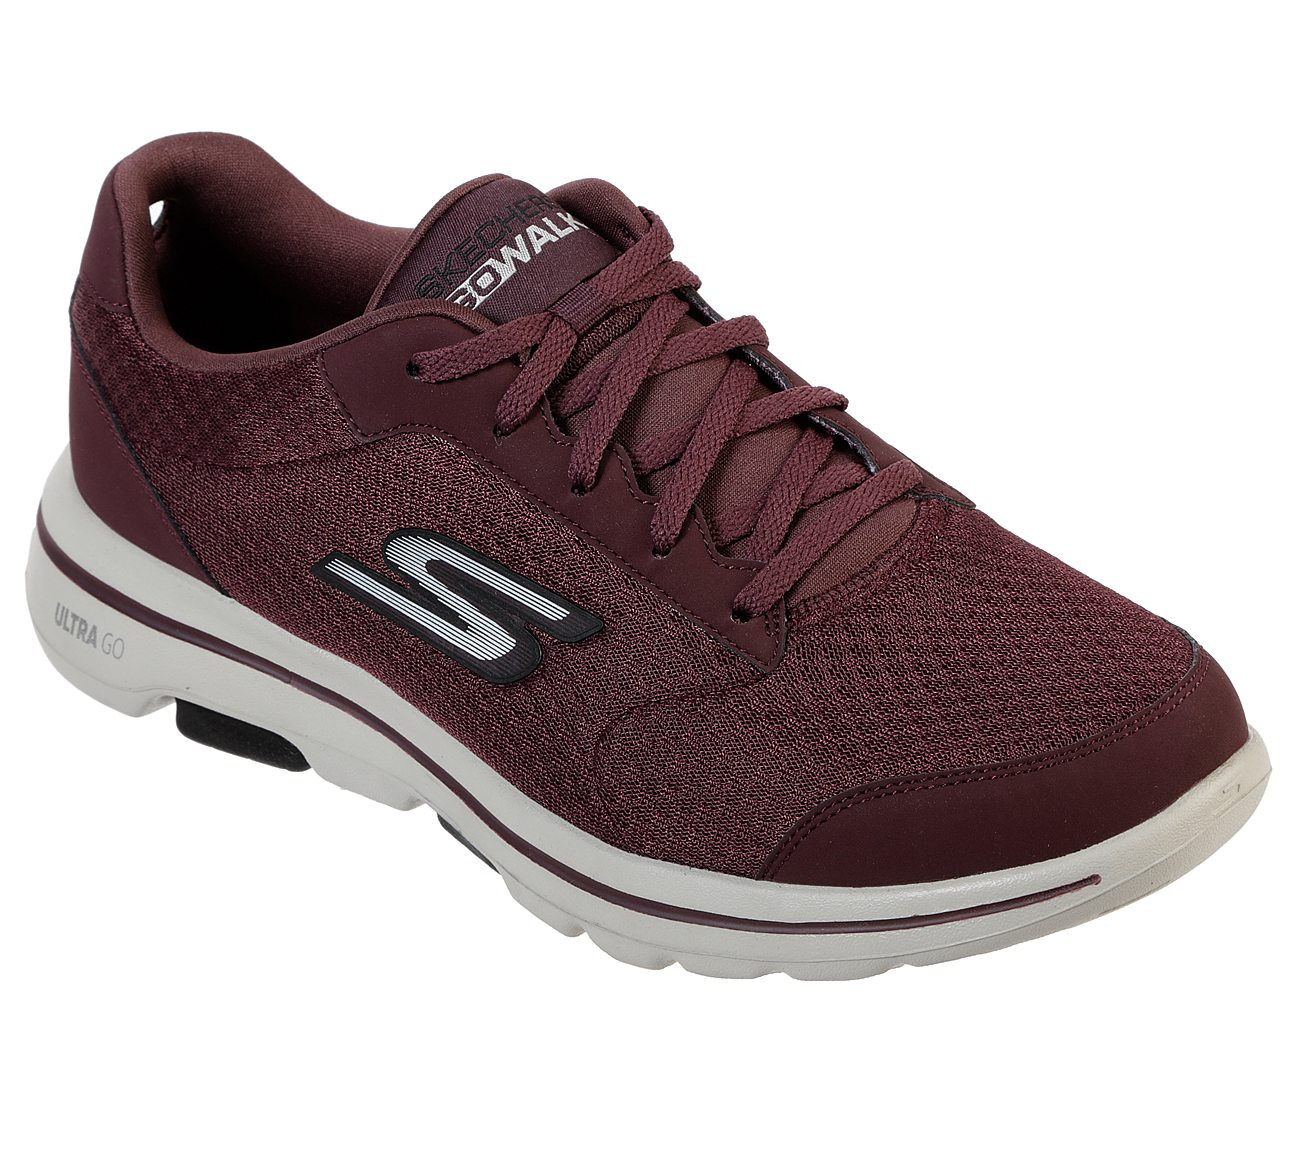 where can i buy skechers sneakers